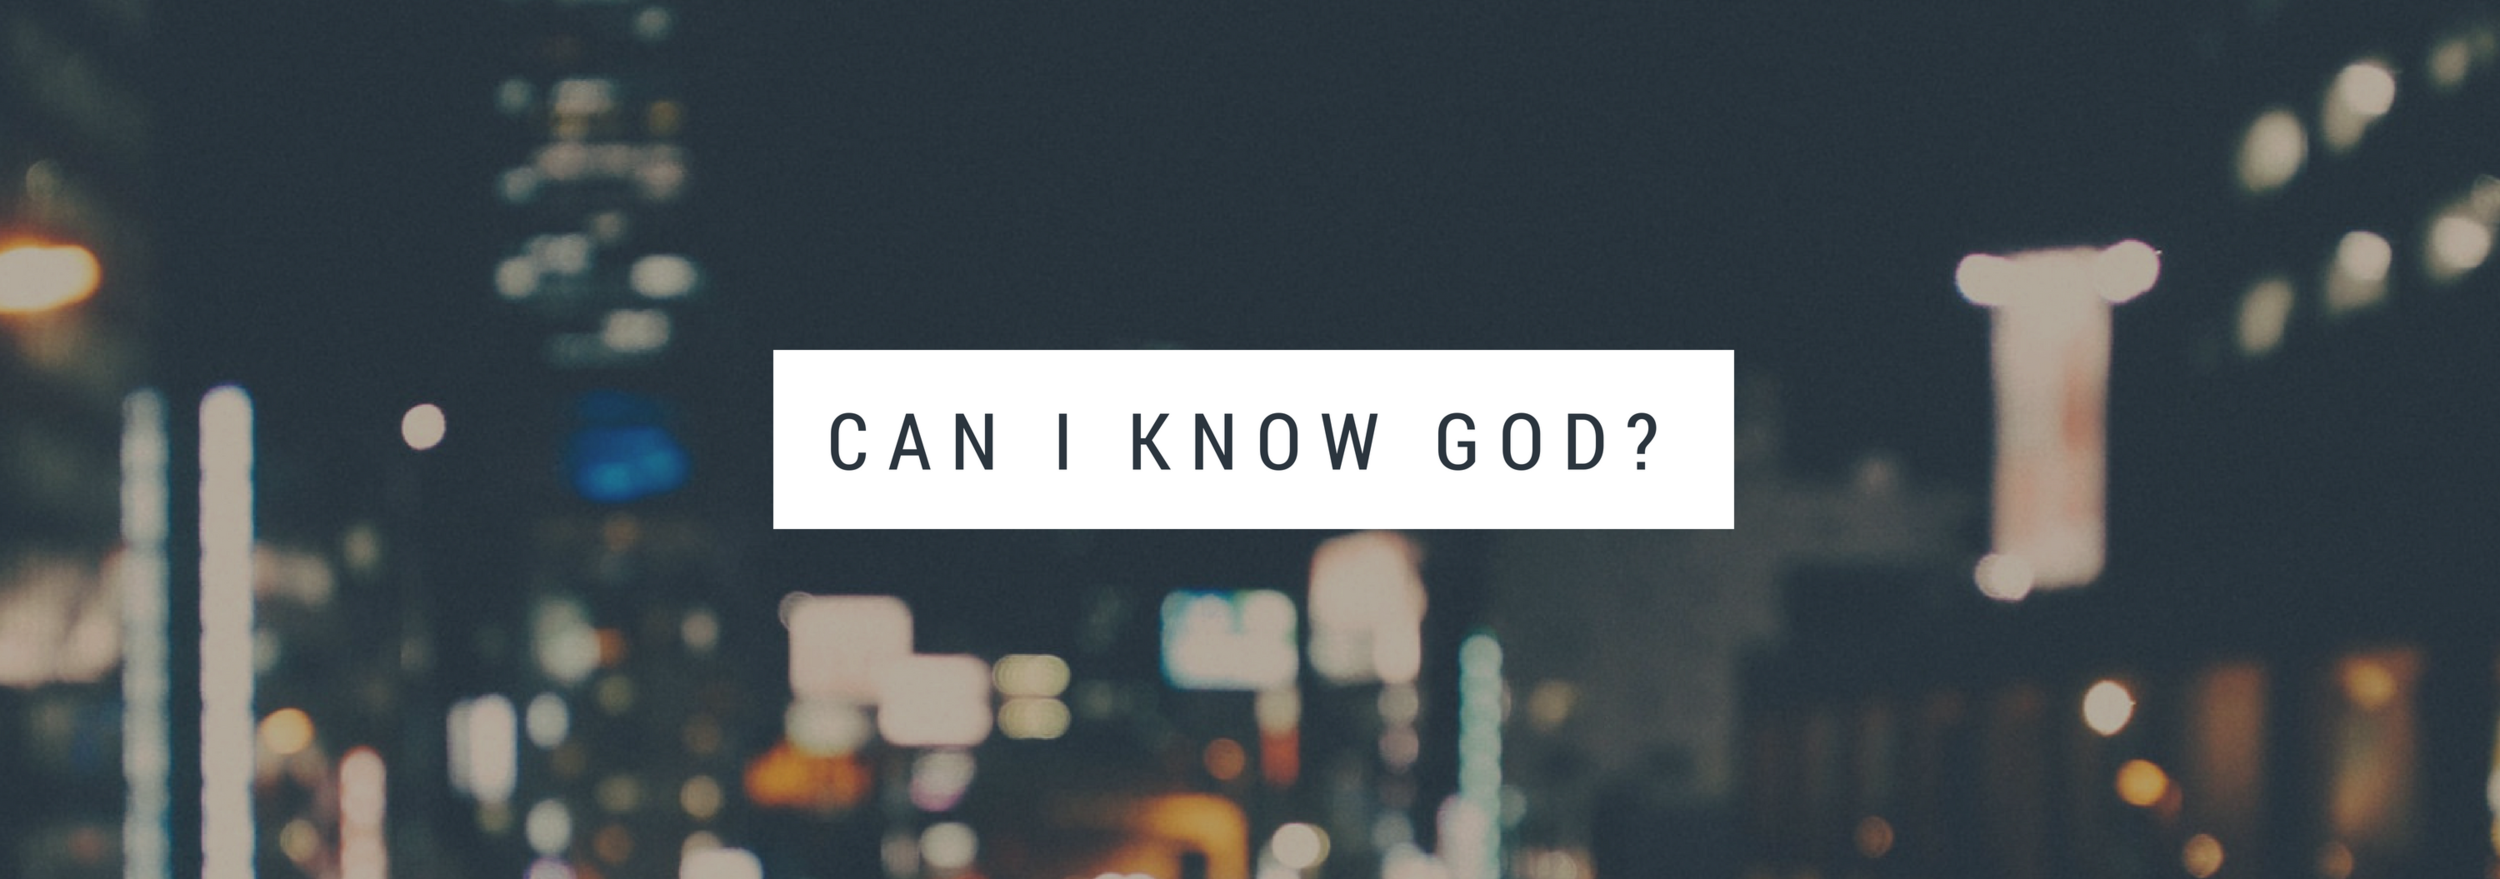 Click here to discover how you can know God.